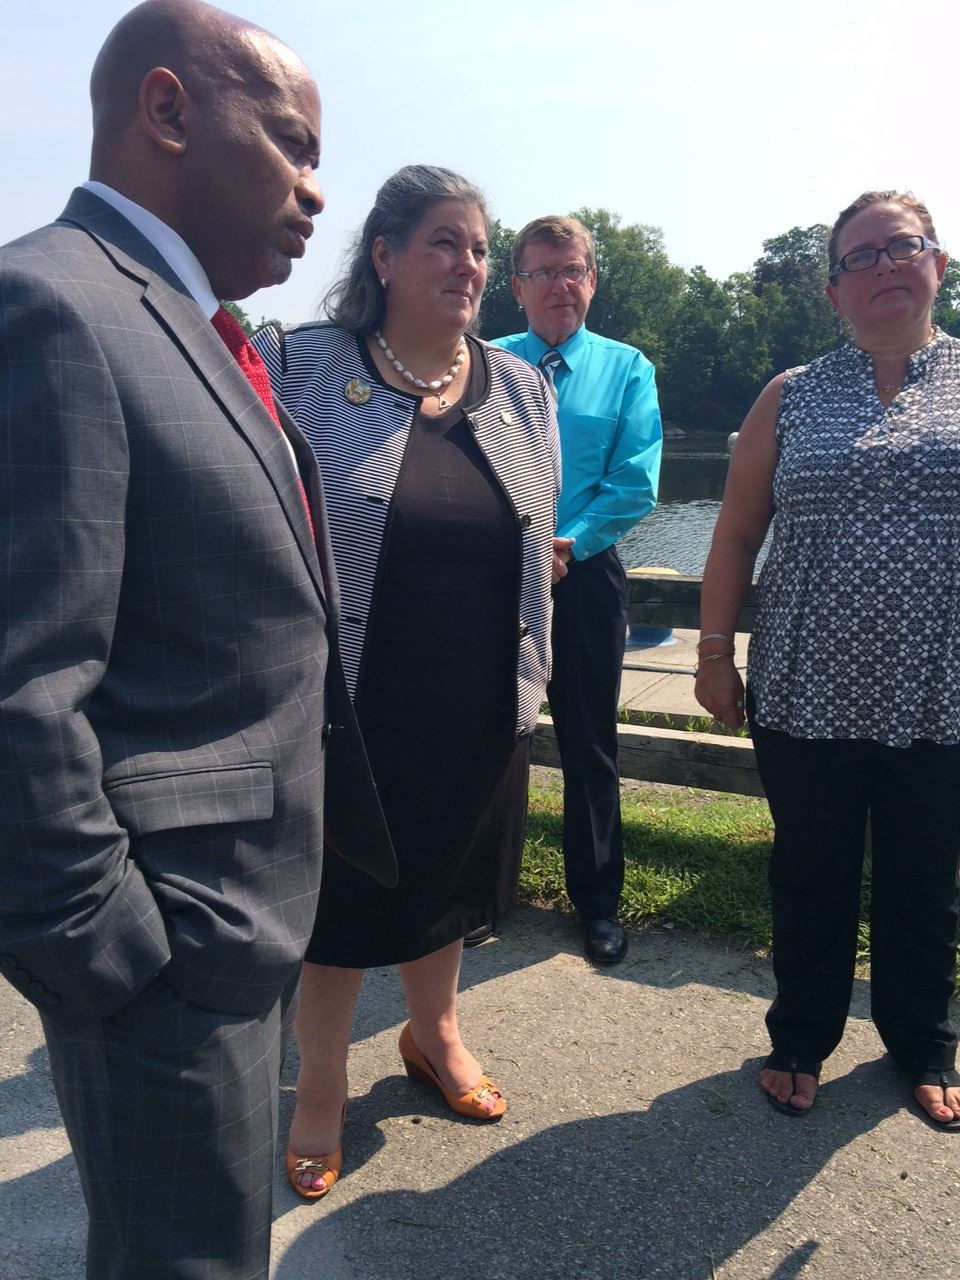 Campaign for a Cleaner Hudson members spoke to NYS Assembly Speaker Carl E. Heastie today in Mechanicville about the GE dredging project and what it means for NY and the communities all along the river that all PCBs are removed from the river.